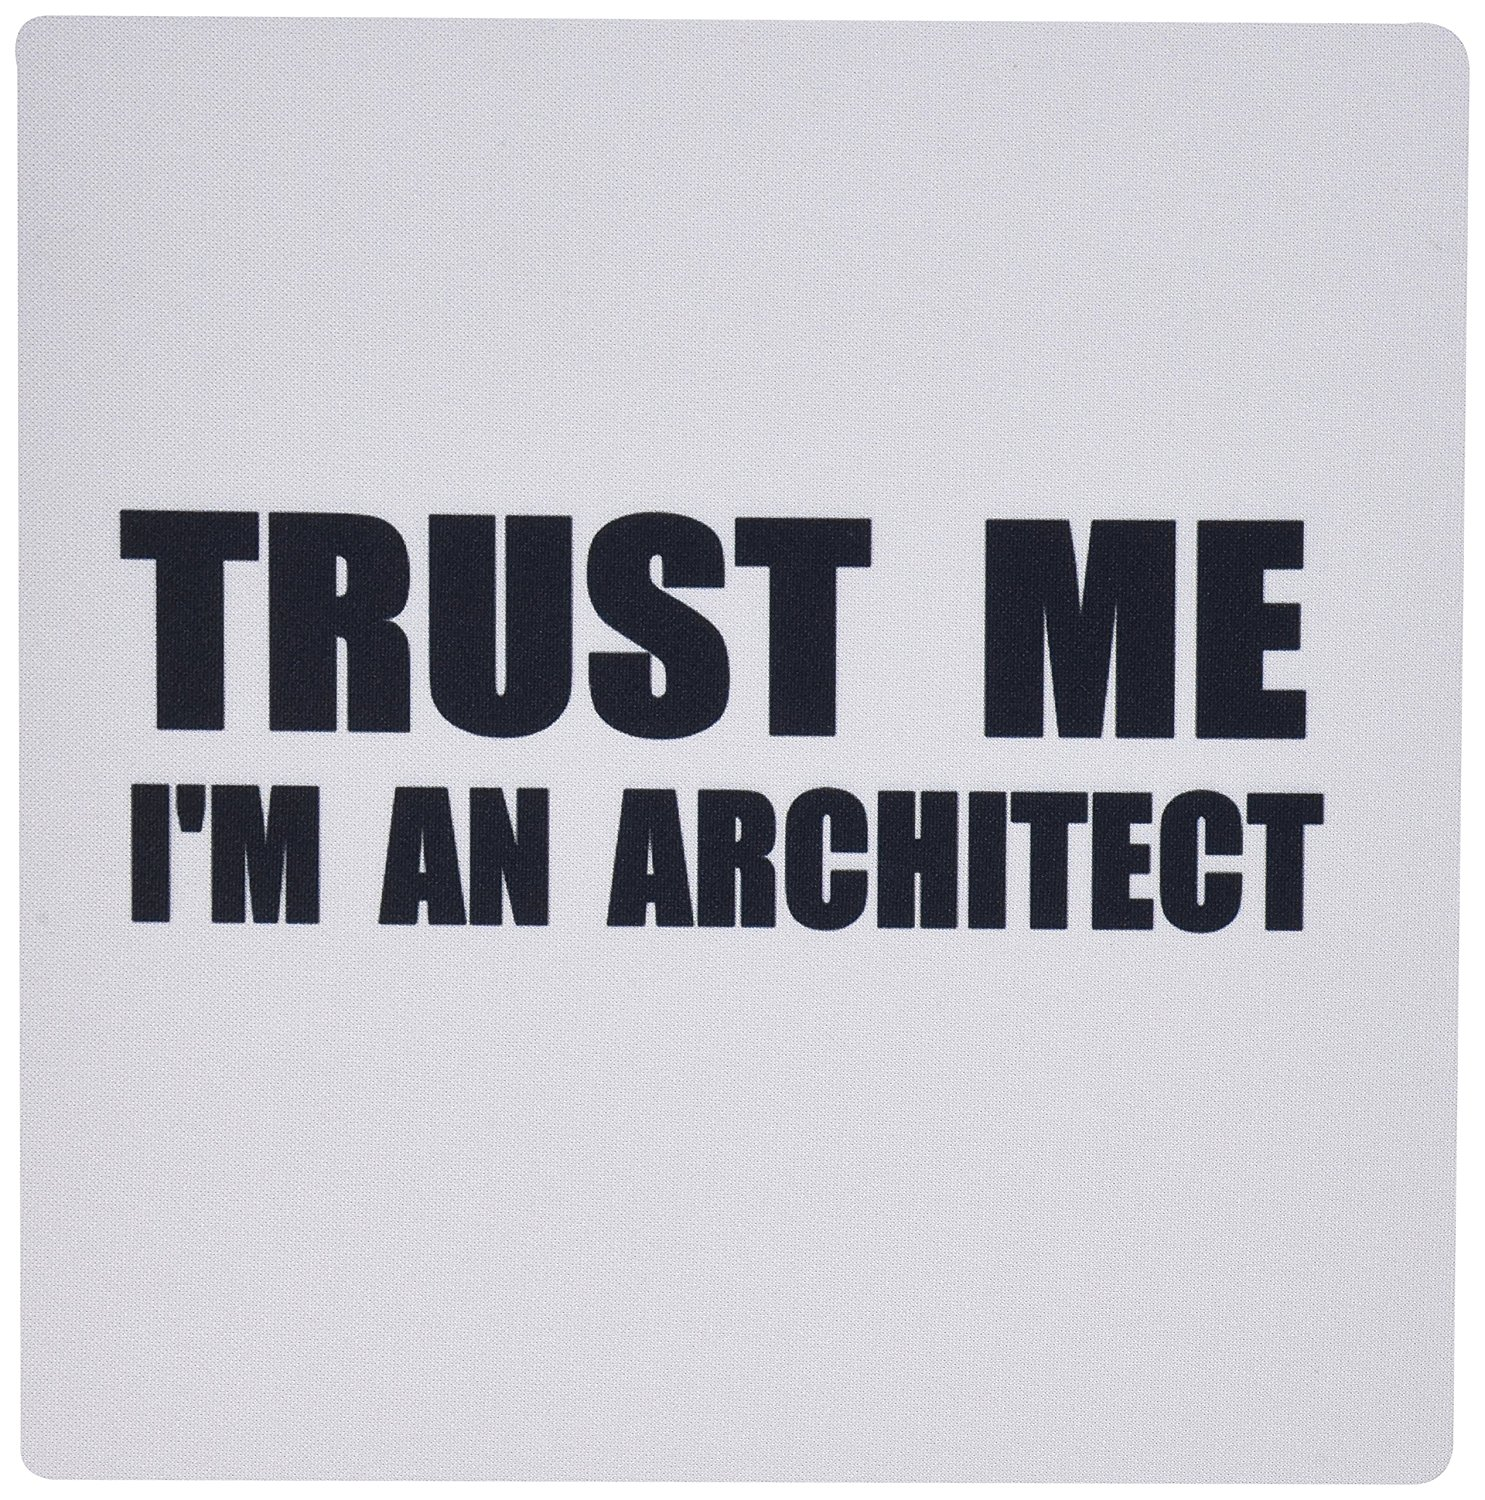 3drose Trust Me I'm An Architect - Fun Architecture Humor Funny Job Work Gift - Mouse Pad